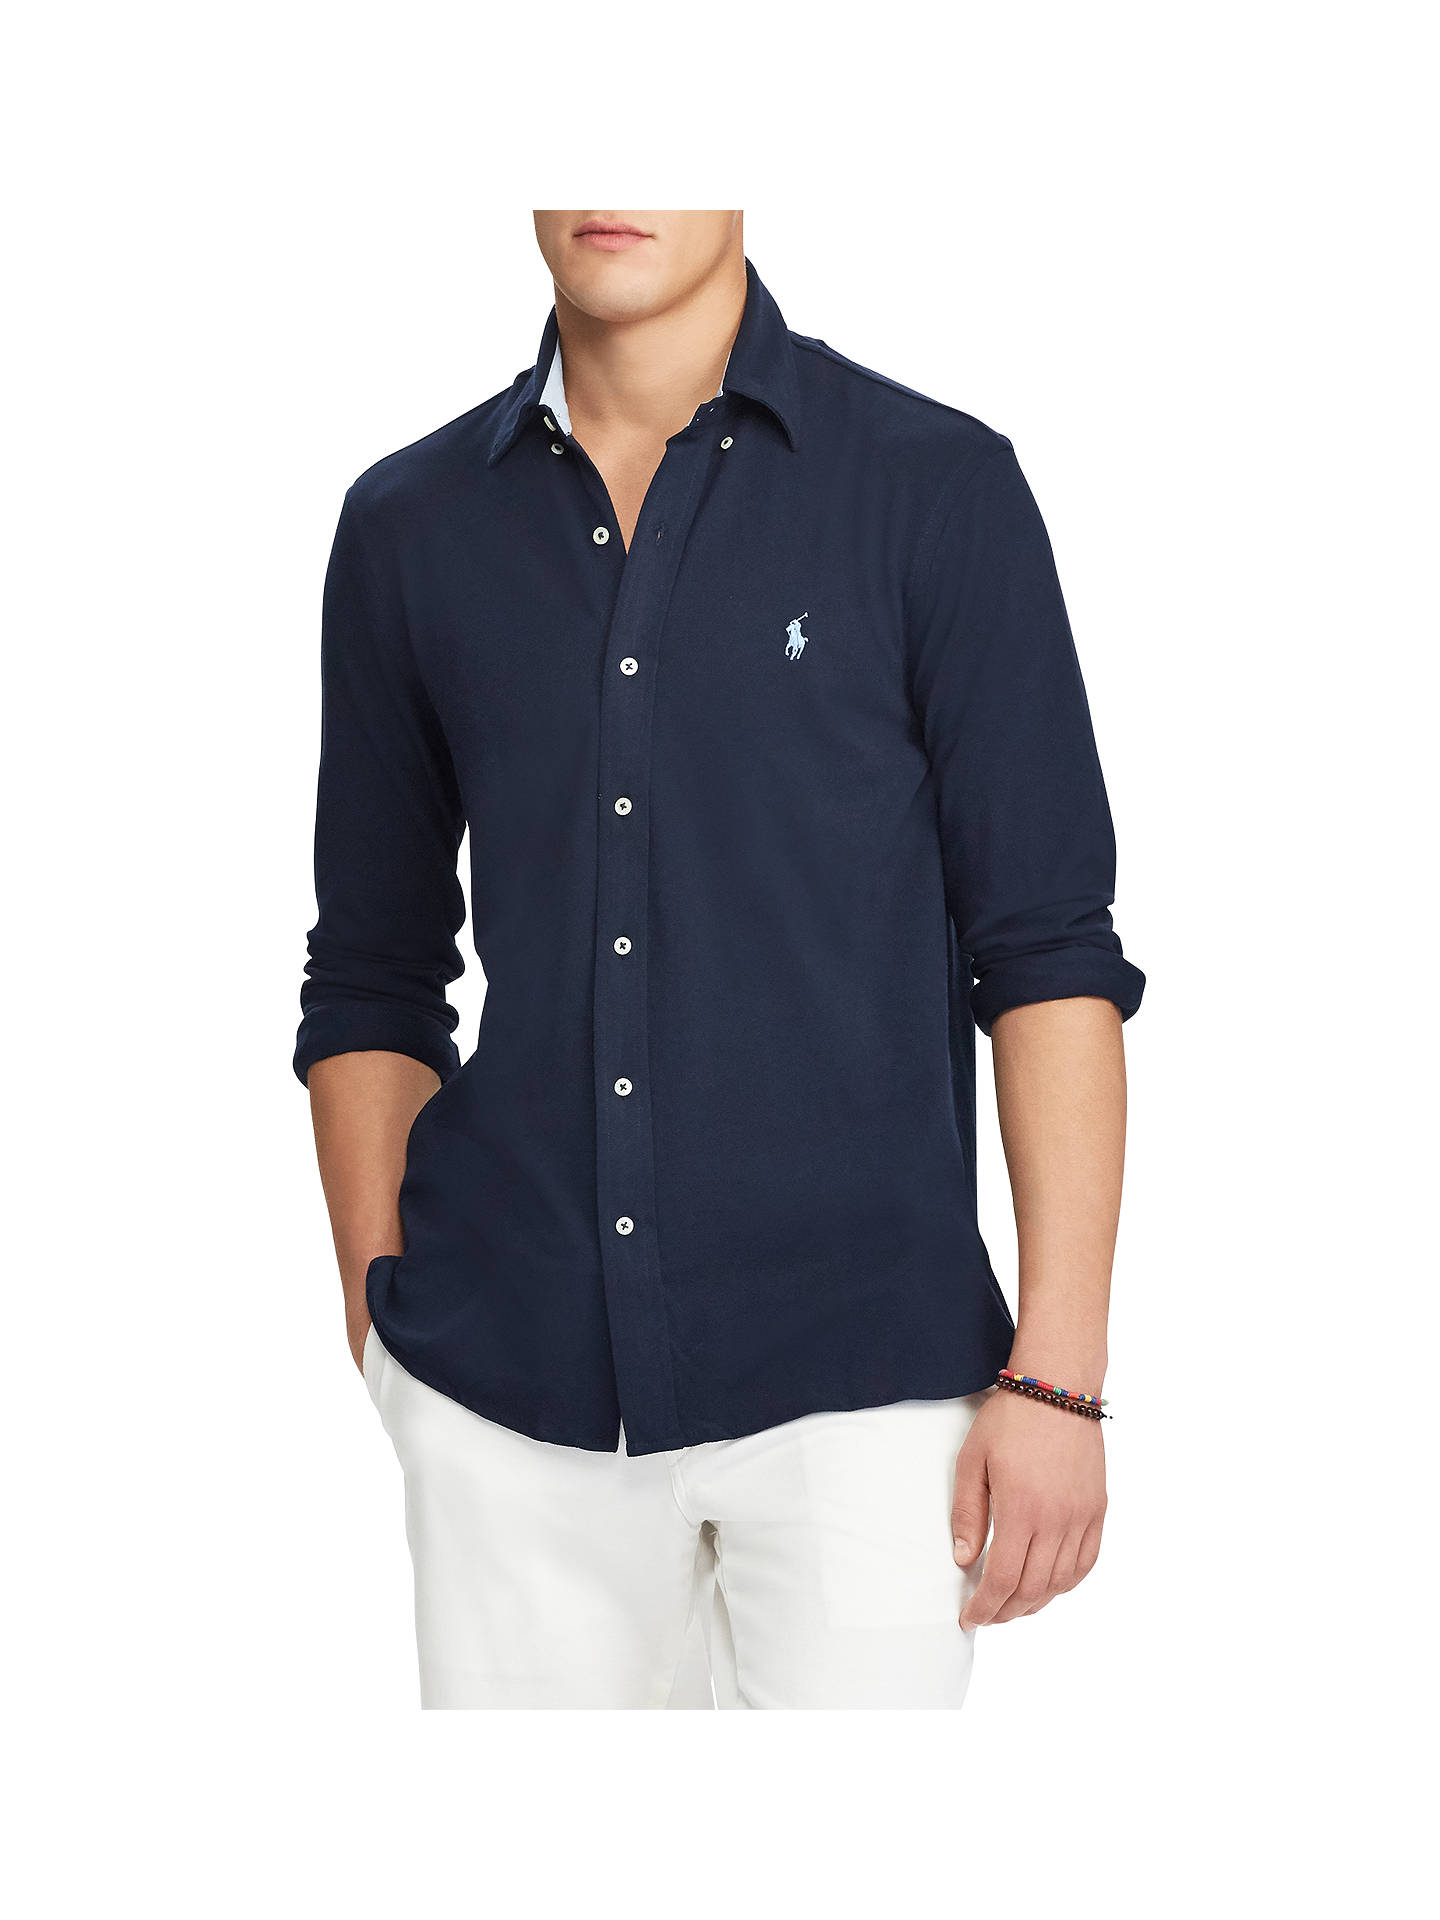 640fbe4eda06f Buy Polo Ralph Lauren Long Sleeve Button Down Shirt, Aviator Navy, S Online  at ...